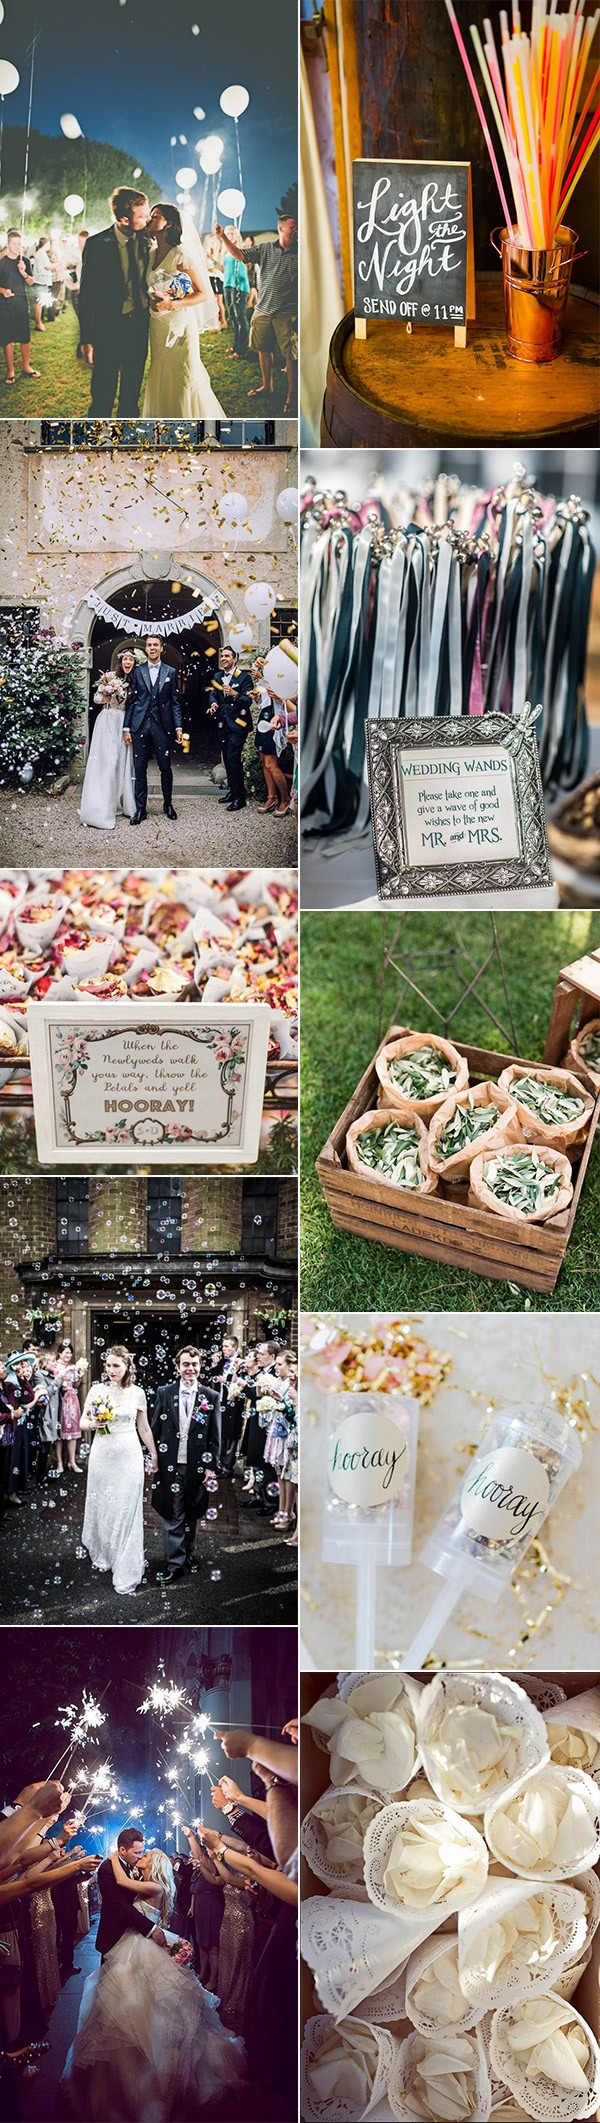 creative wedding exit send off ideas